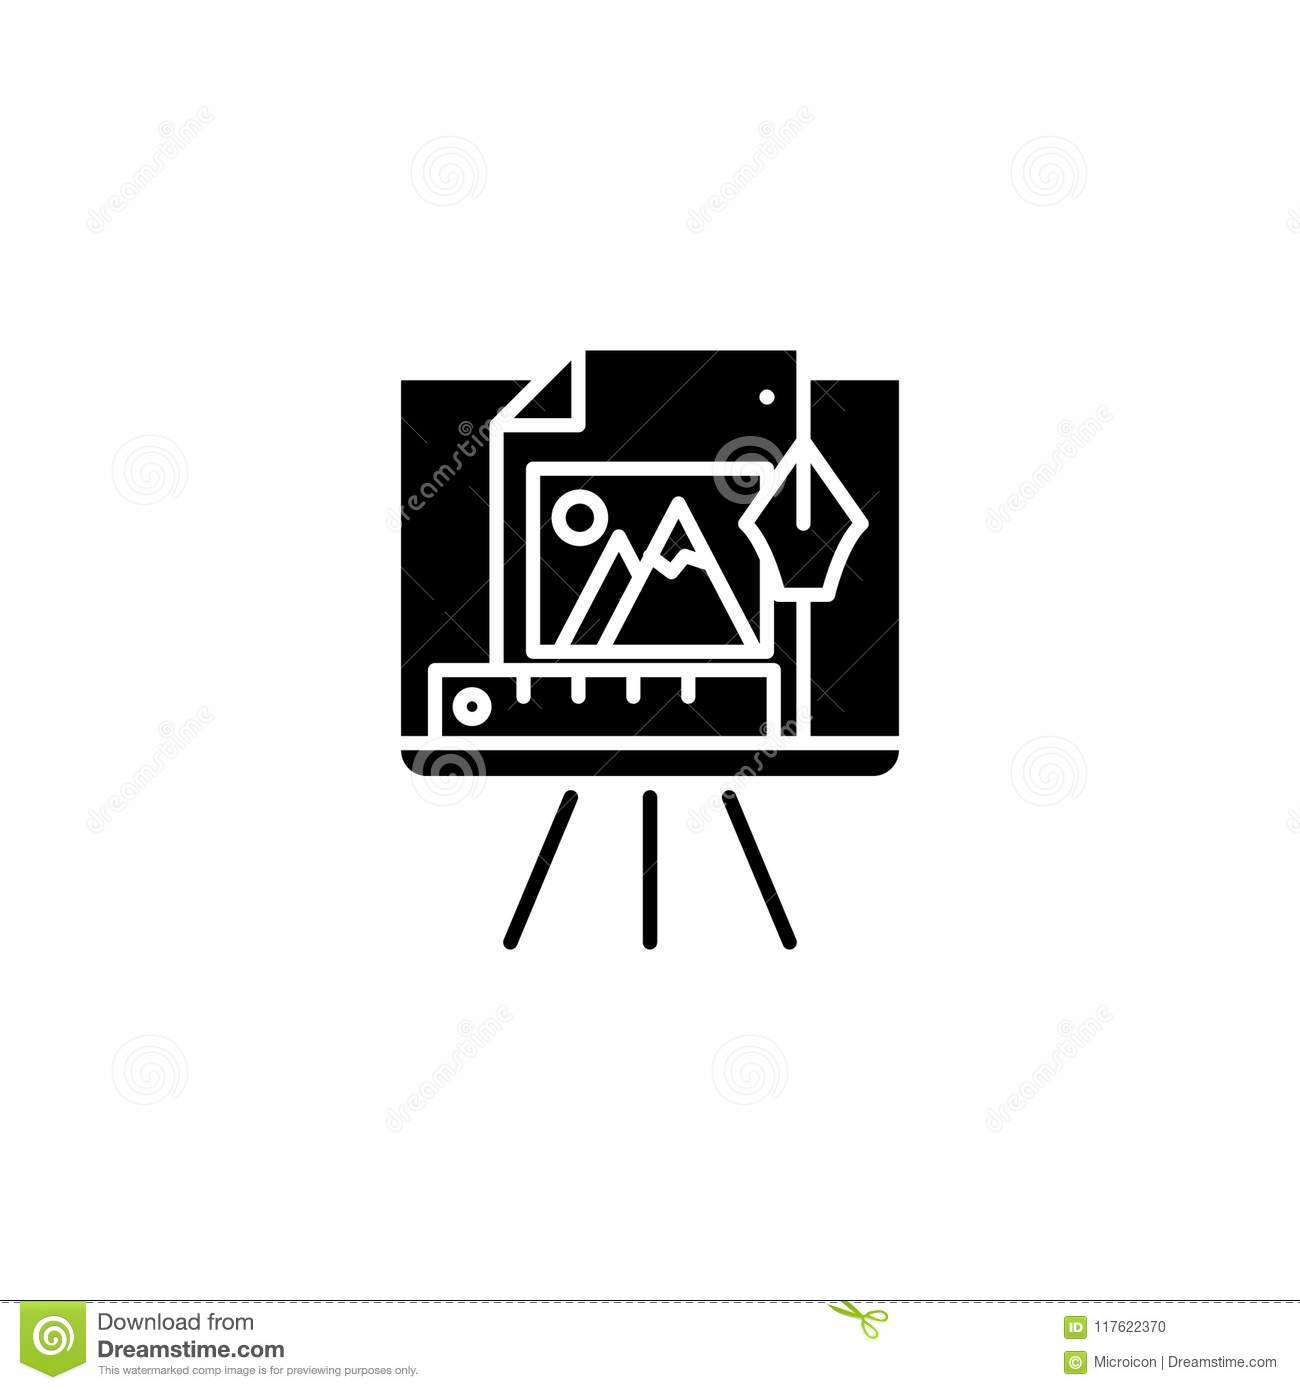 Design drawings black icon concept. Design drawings flat vector symbol, sign, illustration.